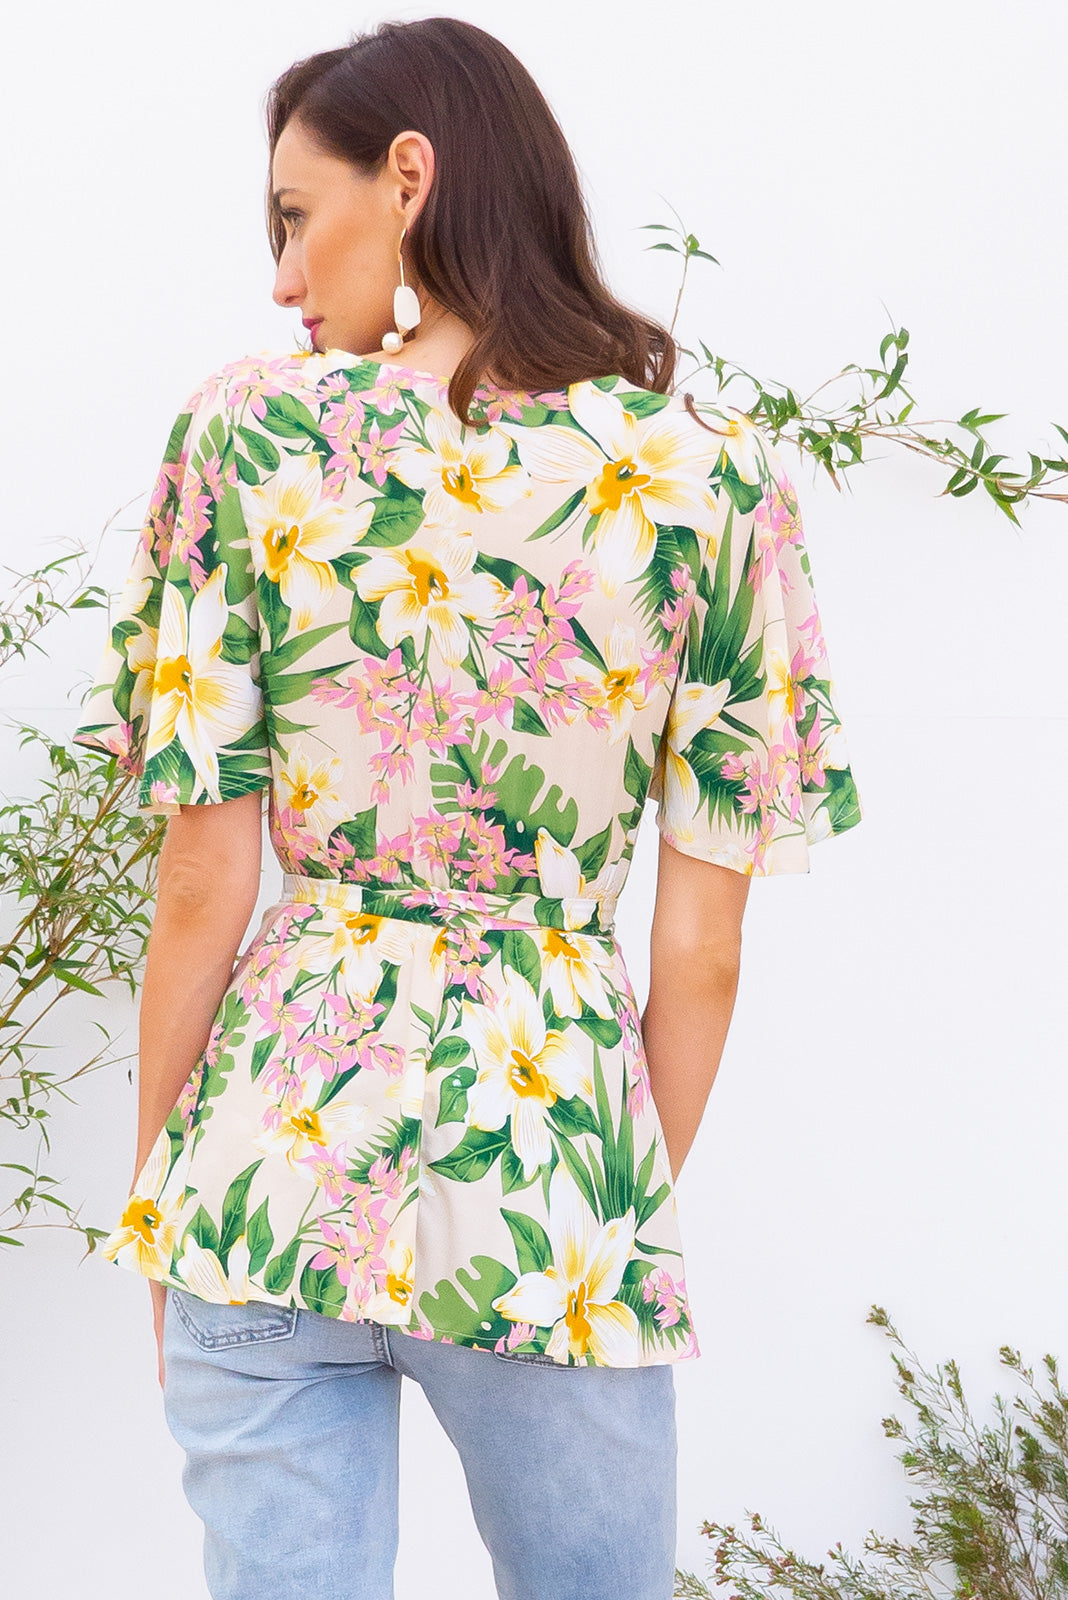 Della Perfect Pastel Wrap Top in a creamy yellow tropical floral  print has petal sleeve and wrap around waist